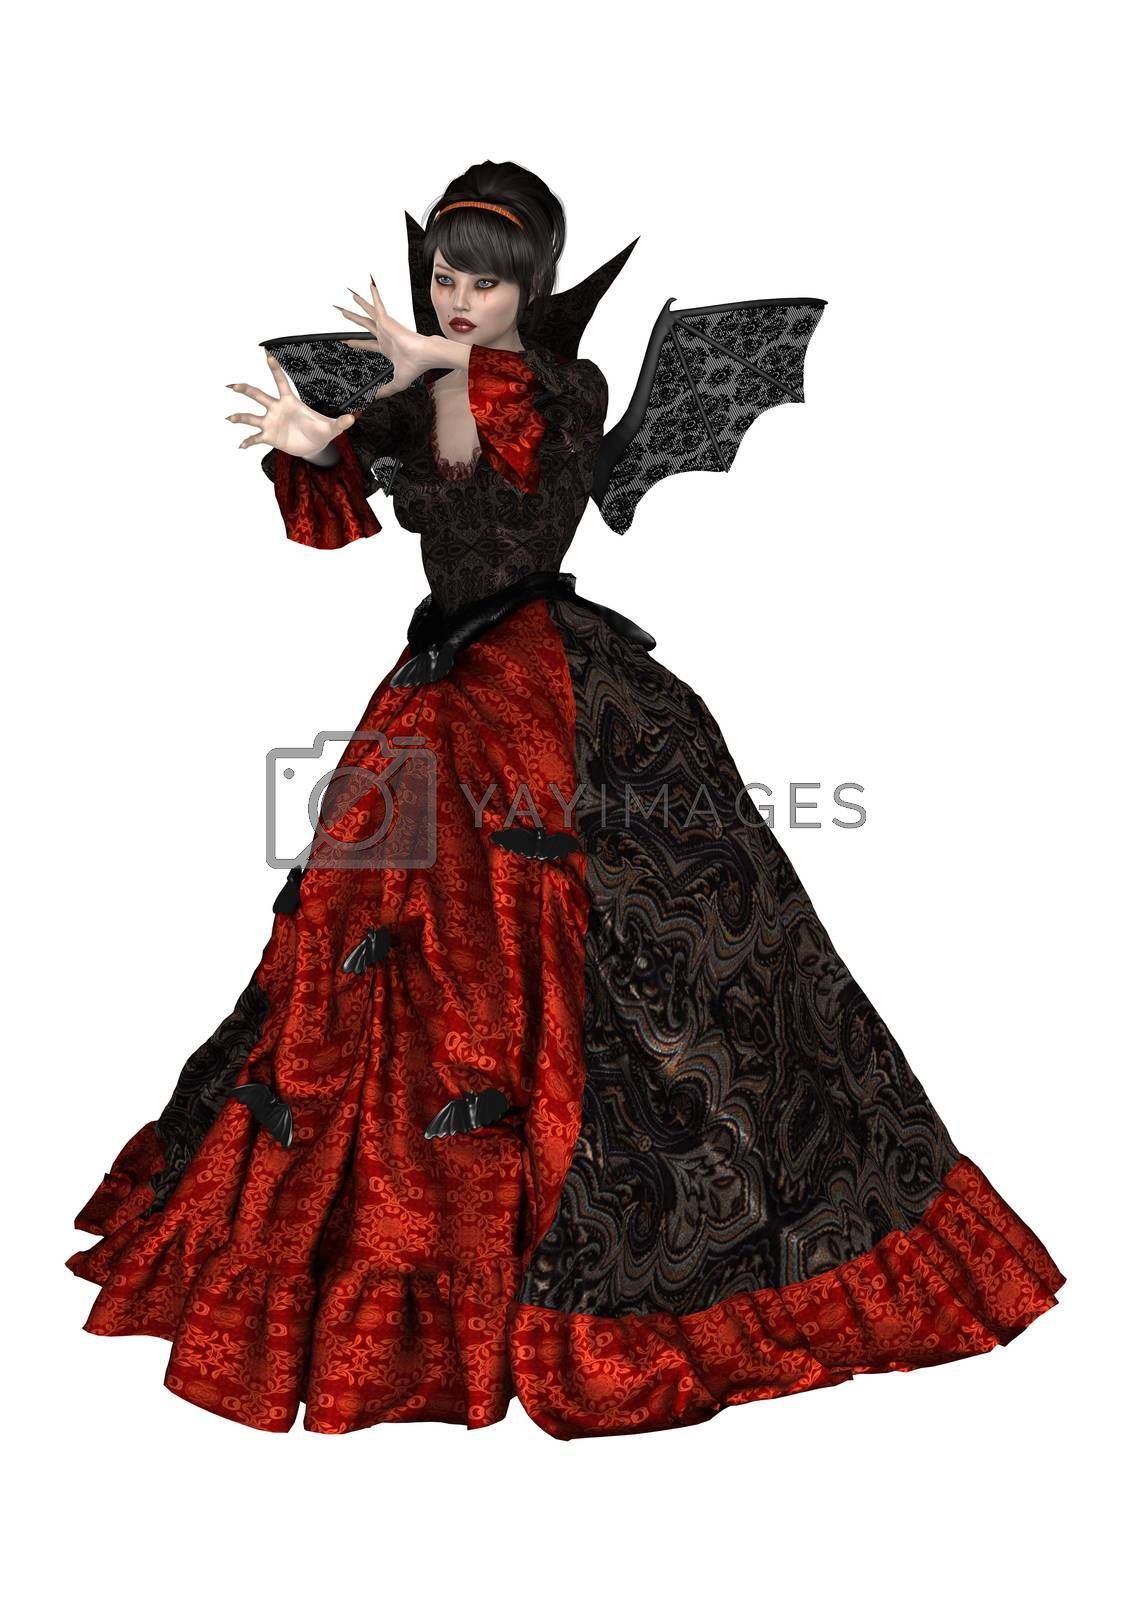 3D digital render of a beautiful lady vamp isolated on white background